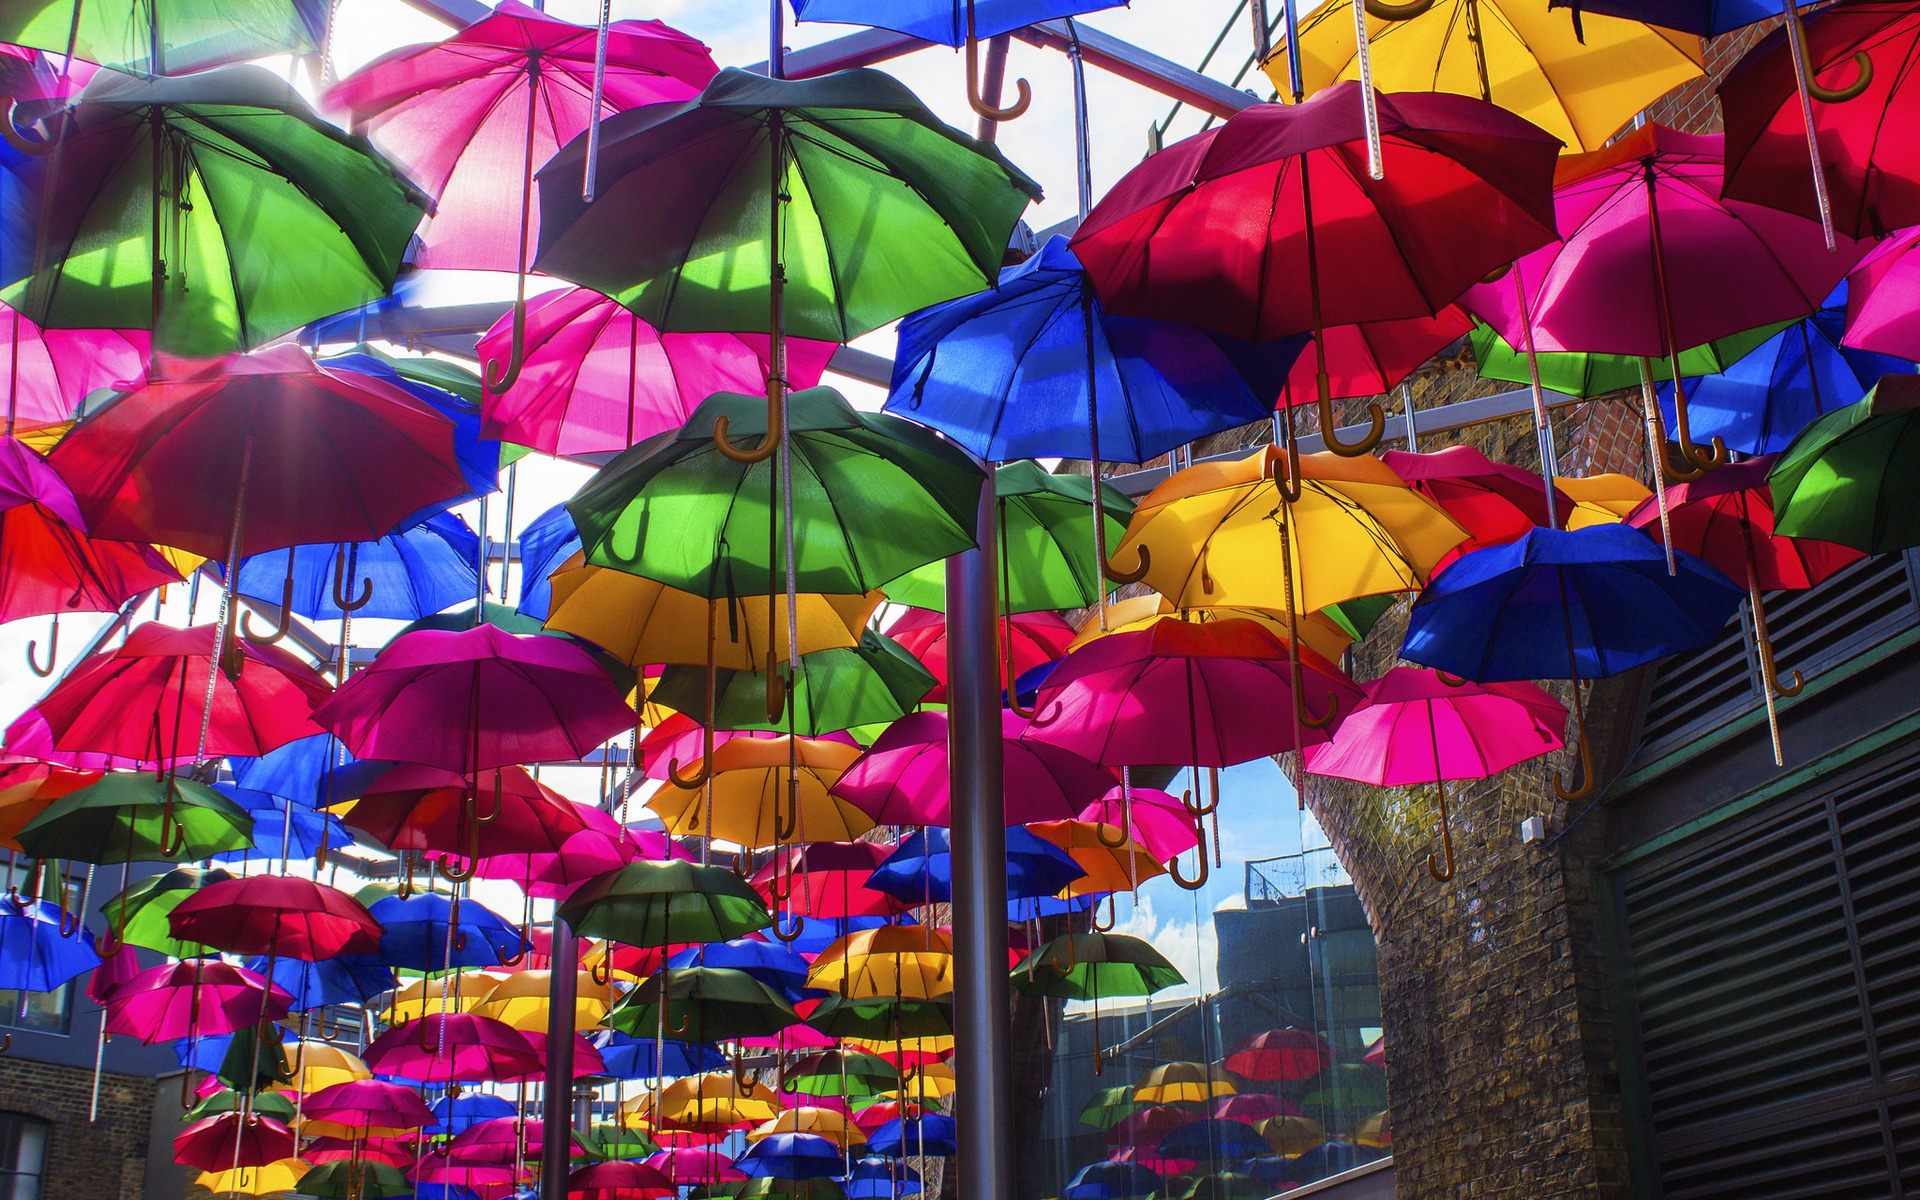 Opened Colorful Umbrellas for 1920 x 1200 widescreen resolution